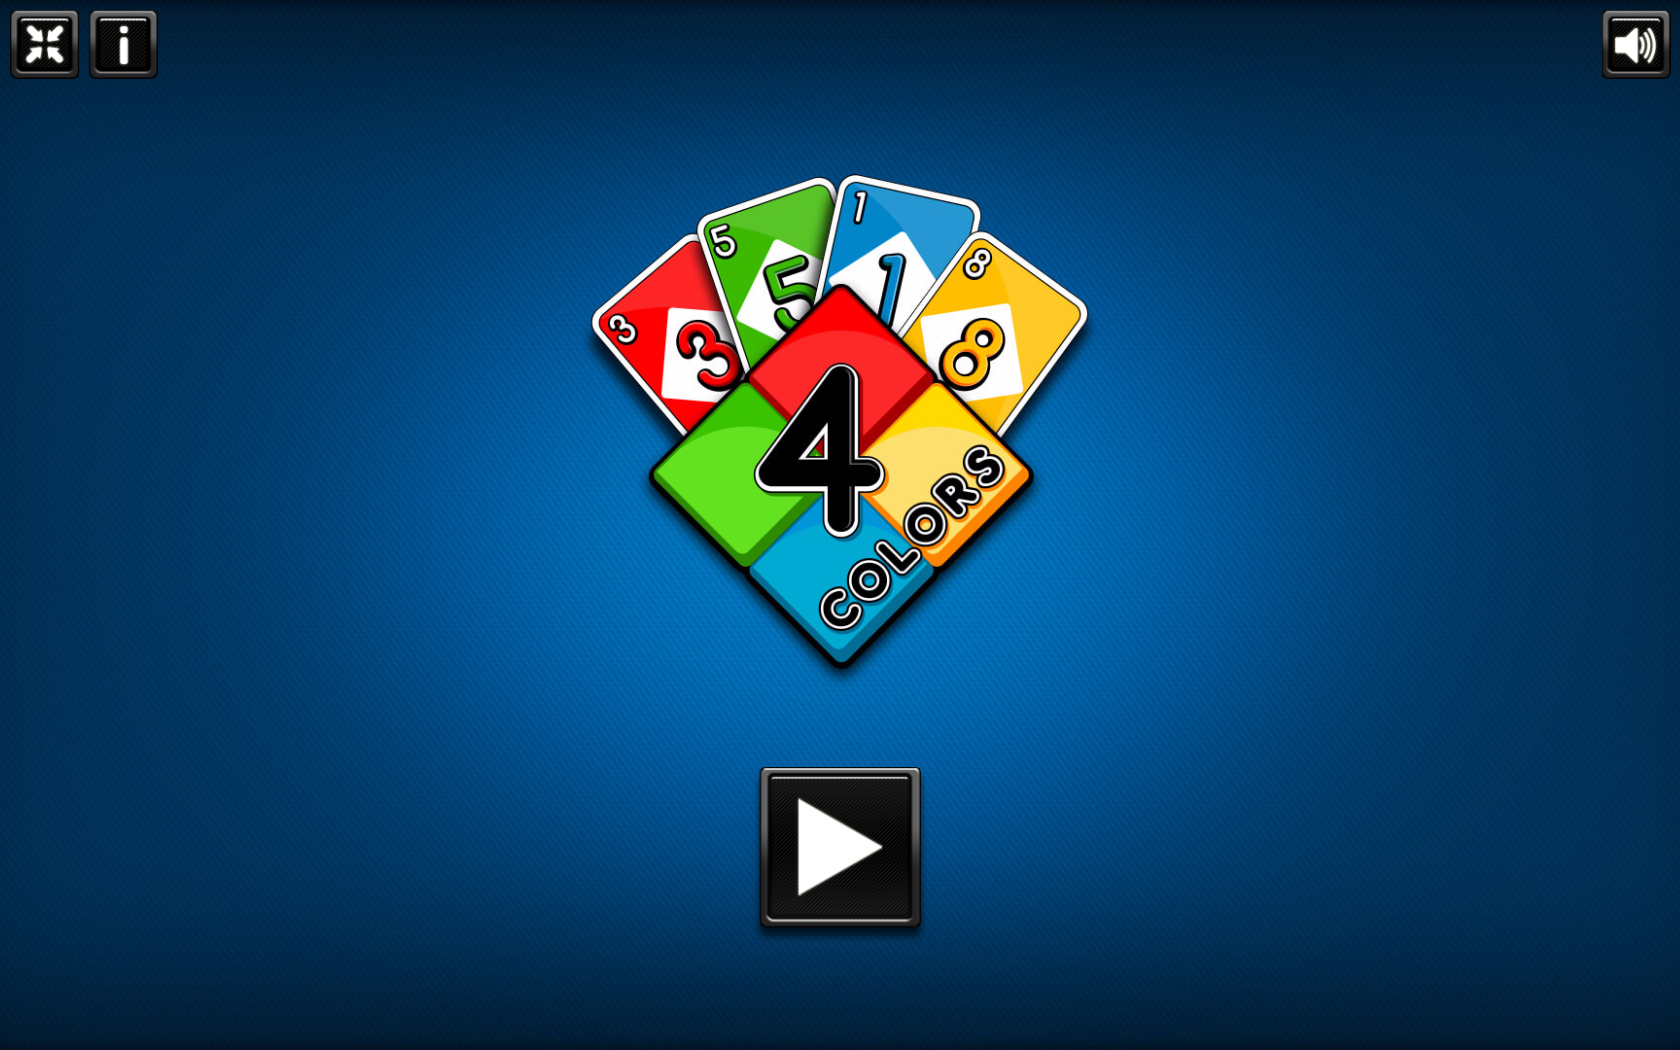 HTML5 Game: Four Colors - Code This Lab srl